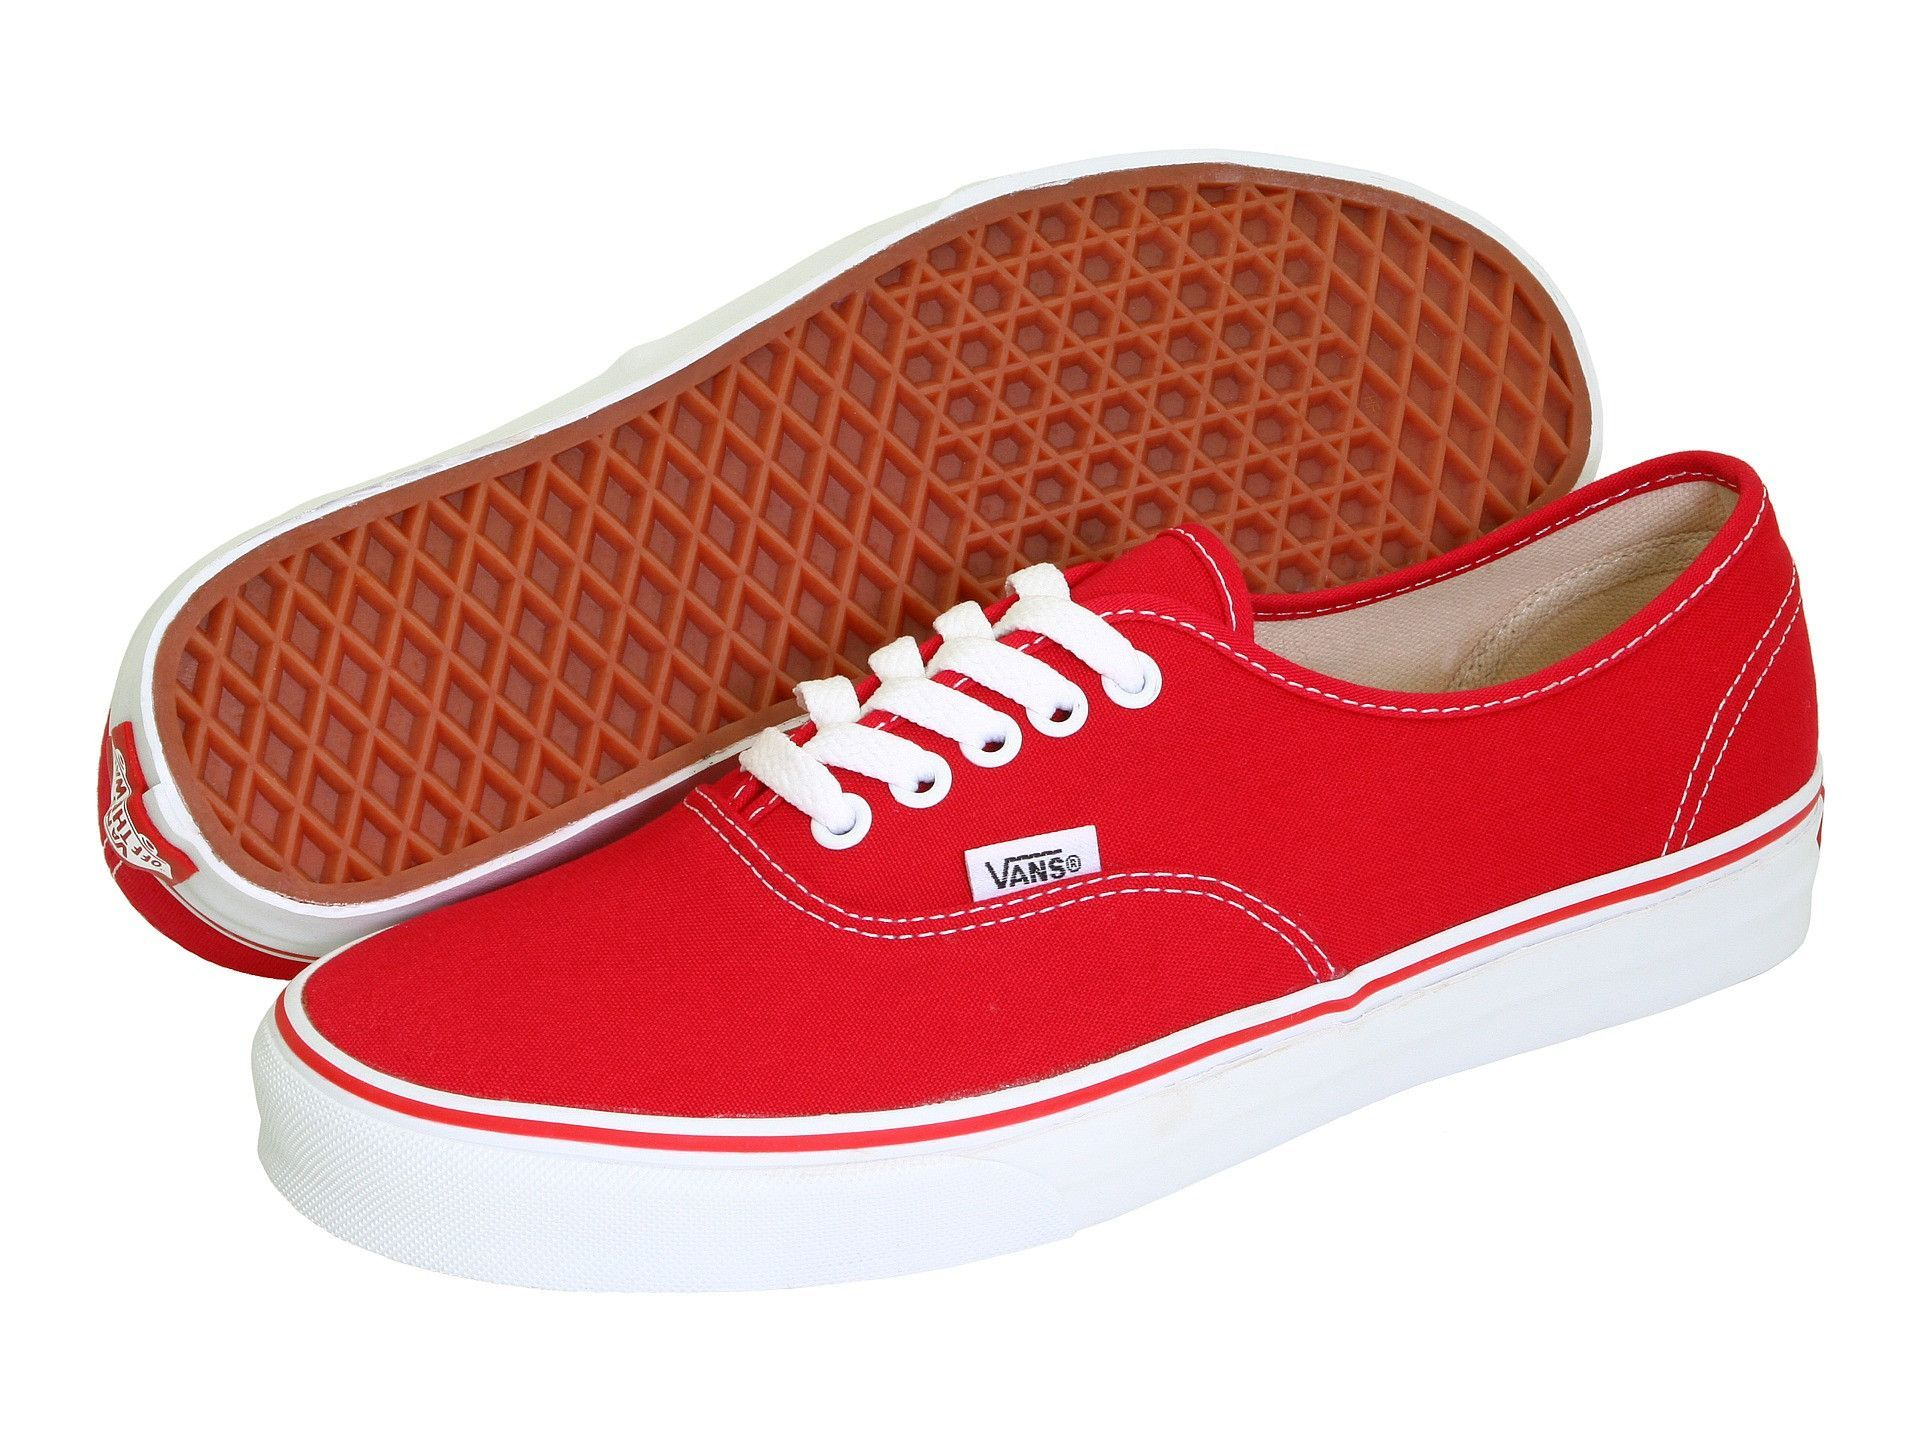 Vans Authentic colour block sneakers - Rojo